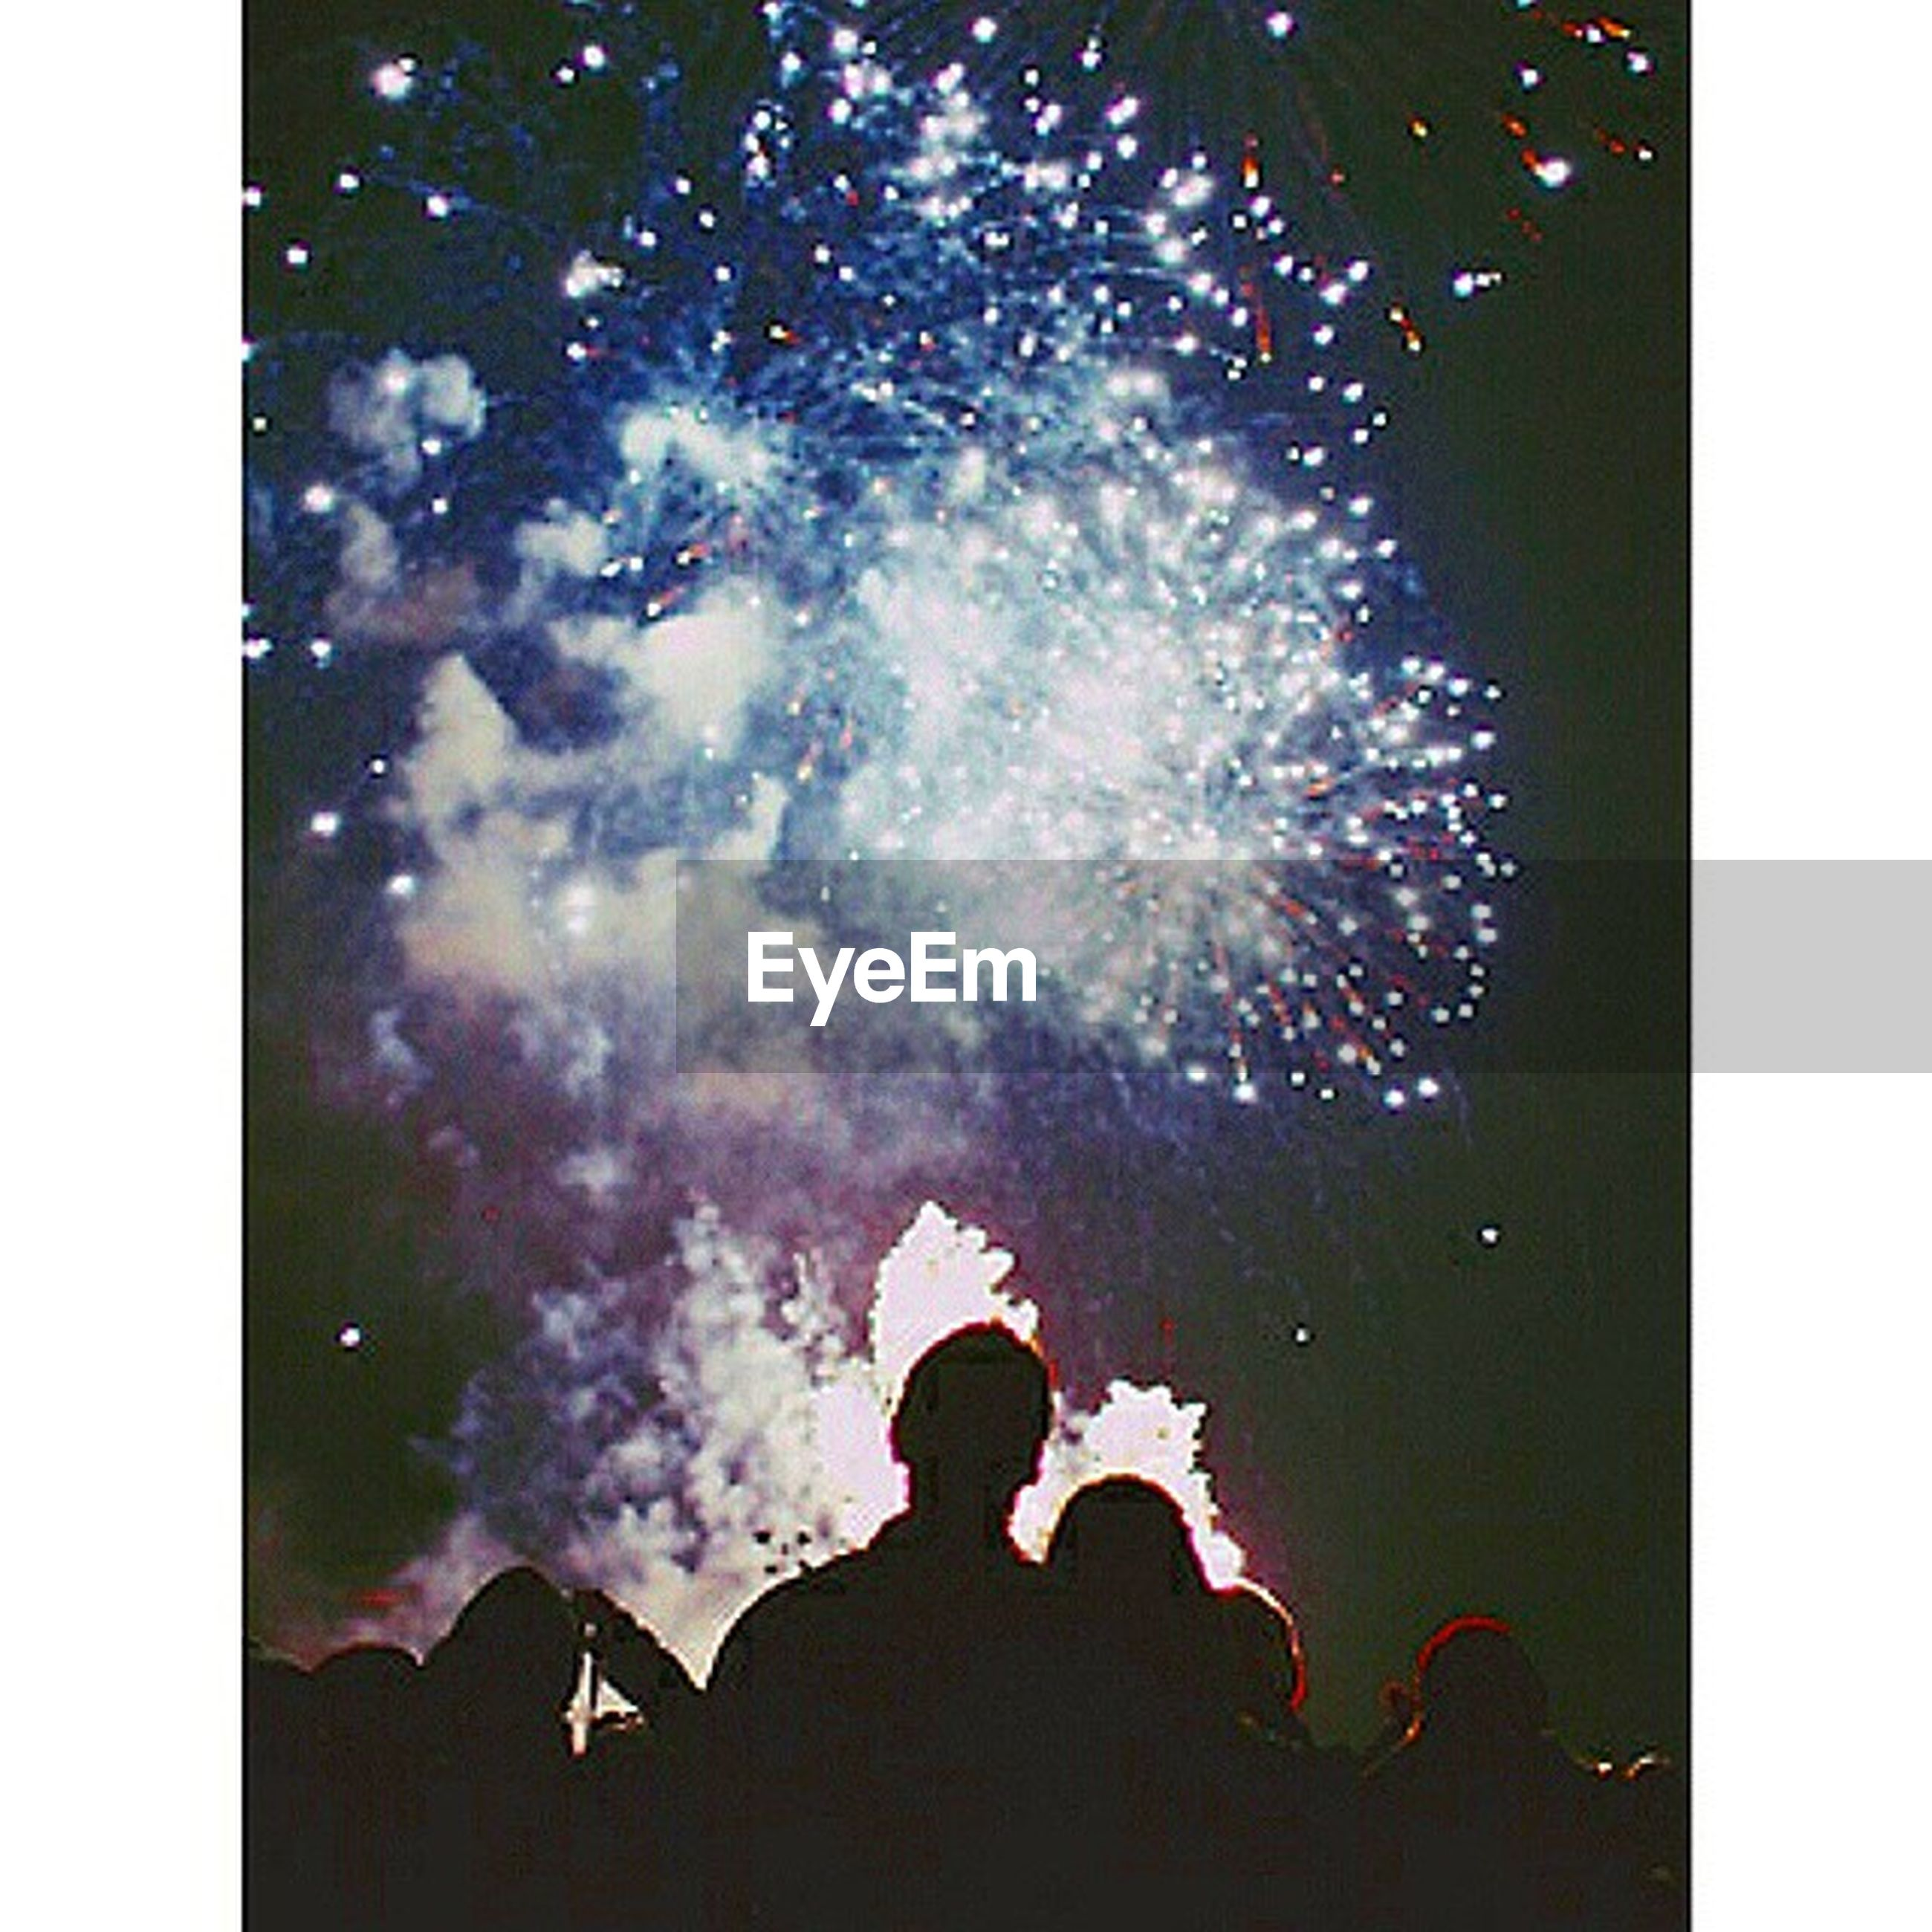 transfer print, lifestyles, leisure activity, auto post production filter, water, night, men, arts culture and entertainment, event, sparks, enjoyment, motion, celebration, firework display, person, unrecognizable person, illuminated, fun